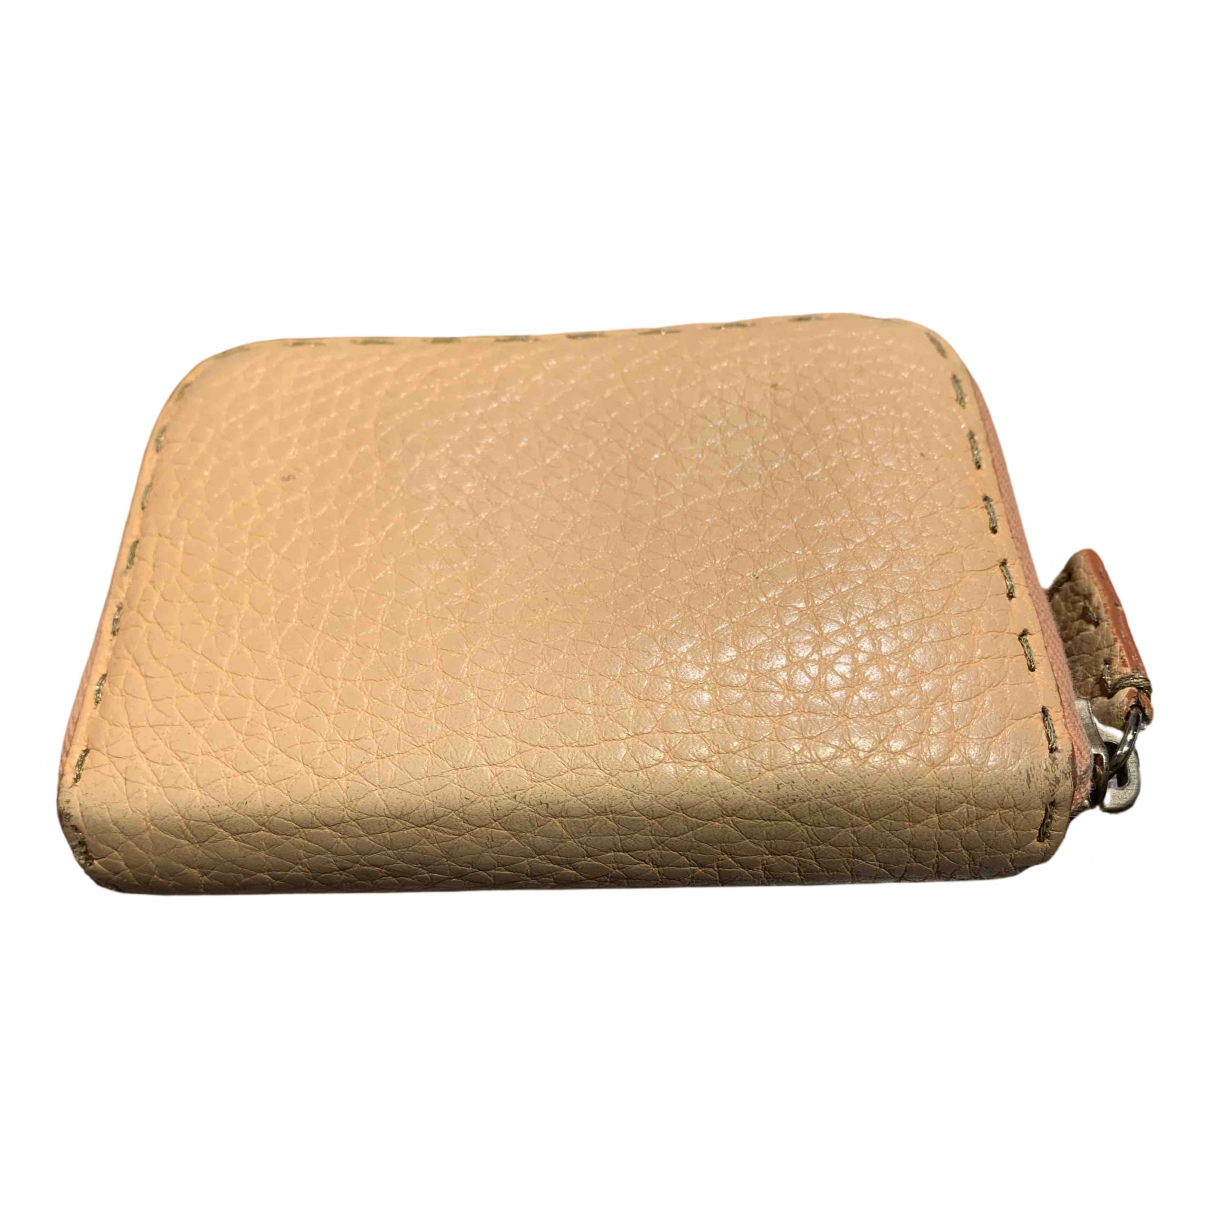 Fendi N Camel Leather wallet for Women N